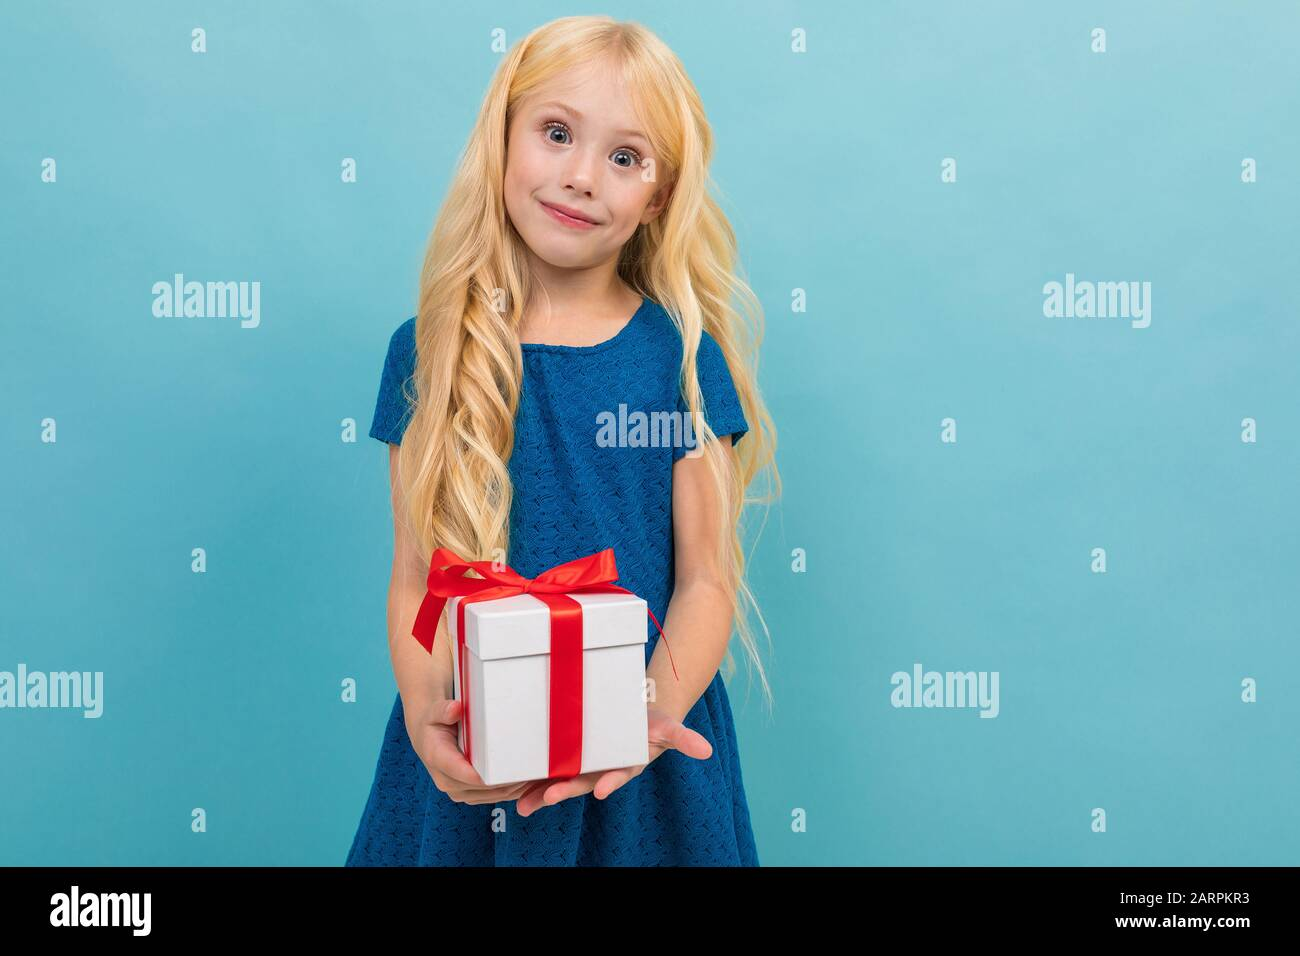 Cute Blond Child In A Dress With A Gift In His Hands On A Light